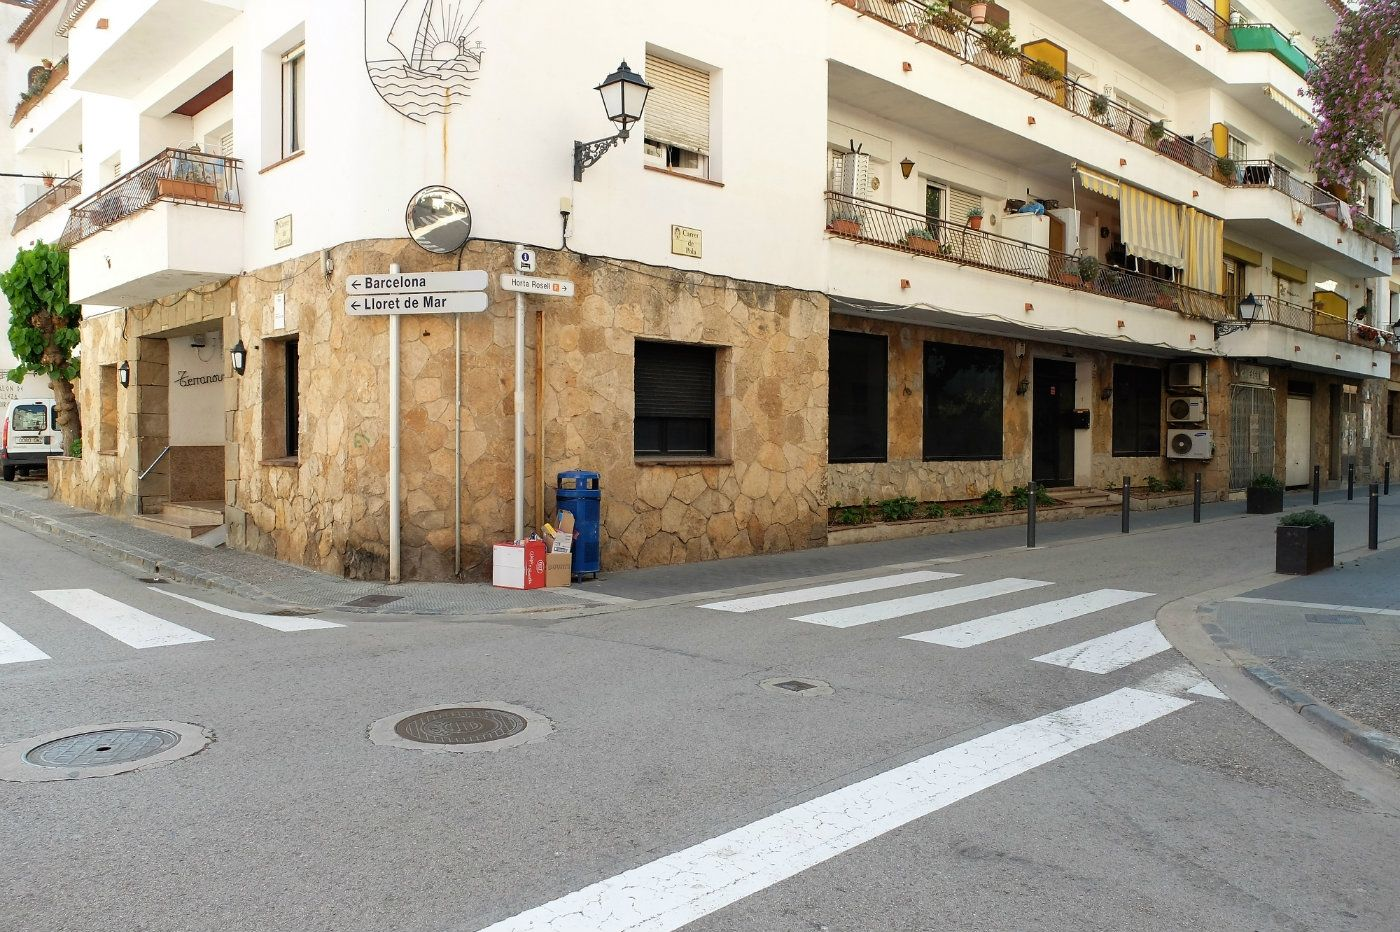 Local Comercial en Carrer giverola, 7. Local comercial en venta